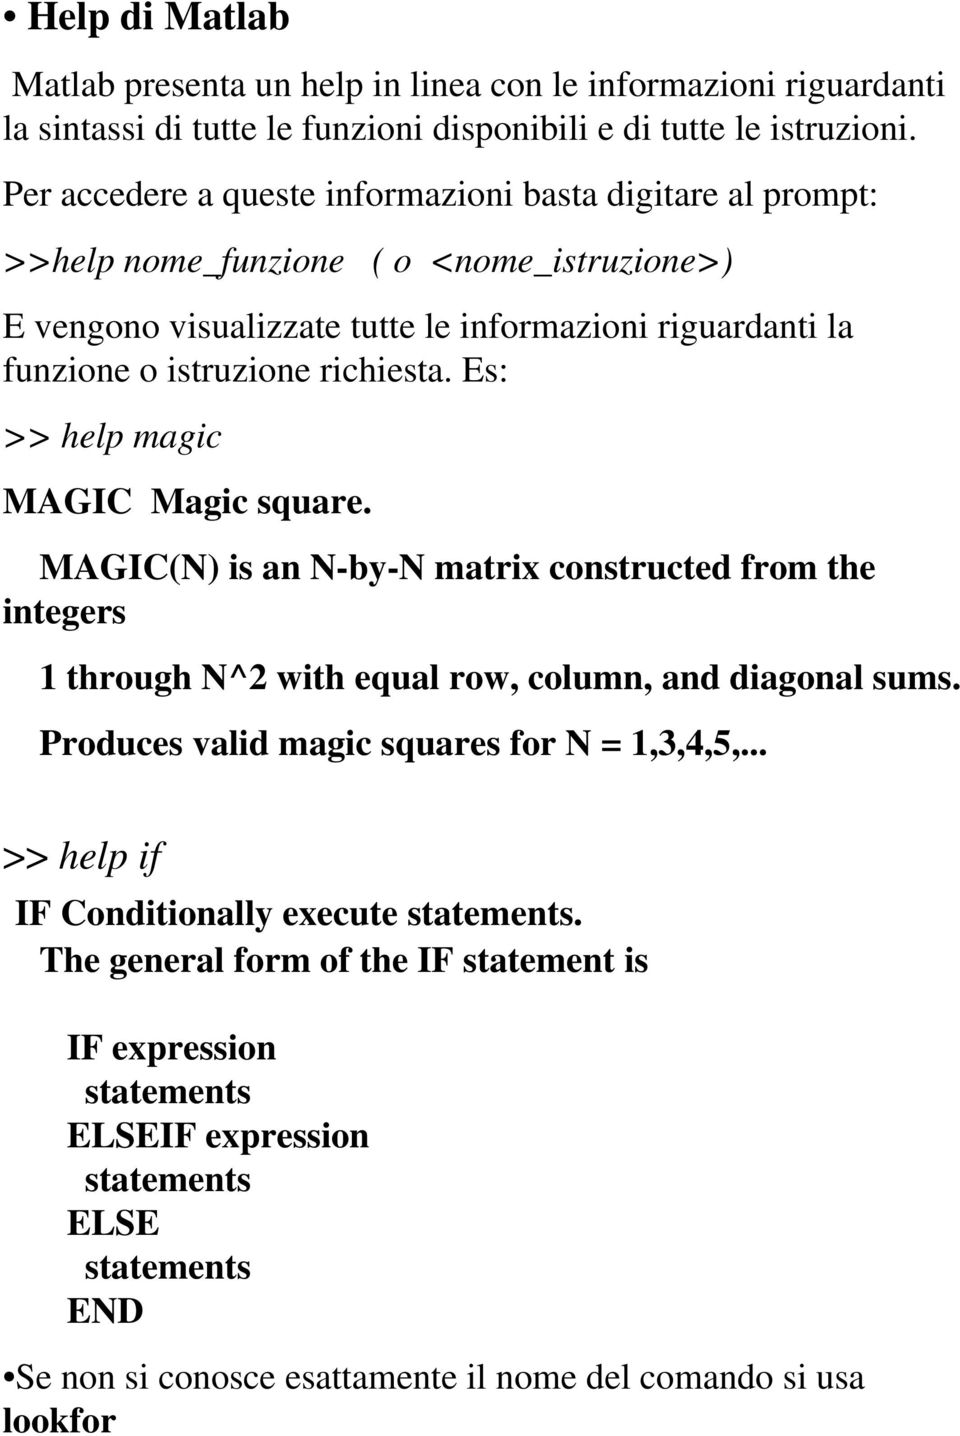 richiesta. Es: >> help magic MAGIC Magic square. MAGIC(N) is an N-by-N matrix constructed from the integers 1 through N^2 with equal row, column, and diagonal sums.